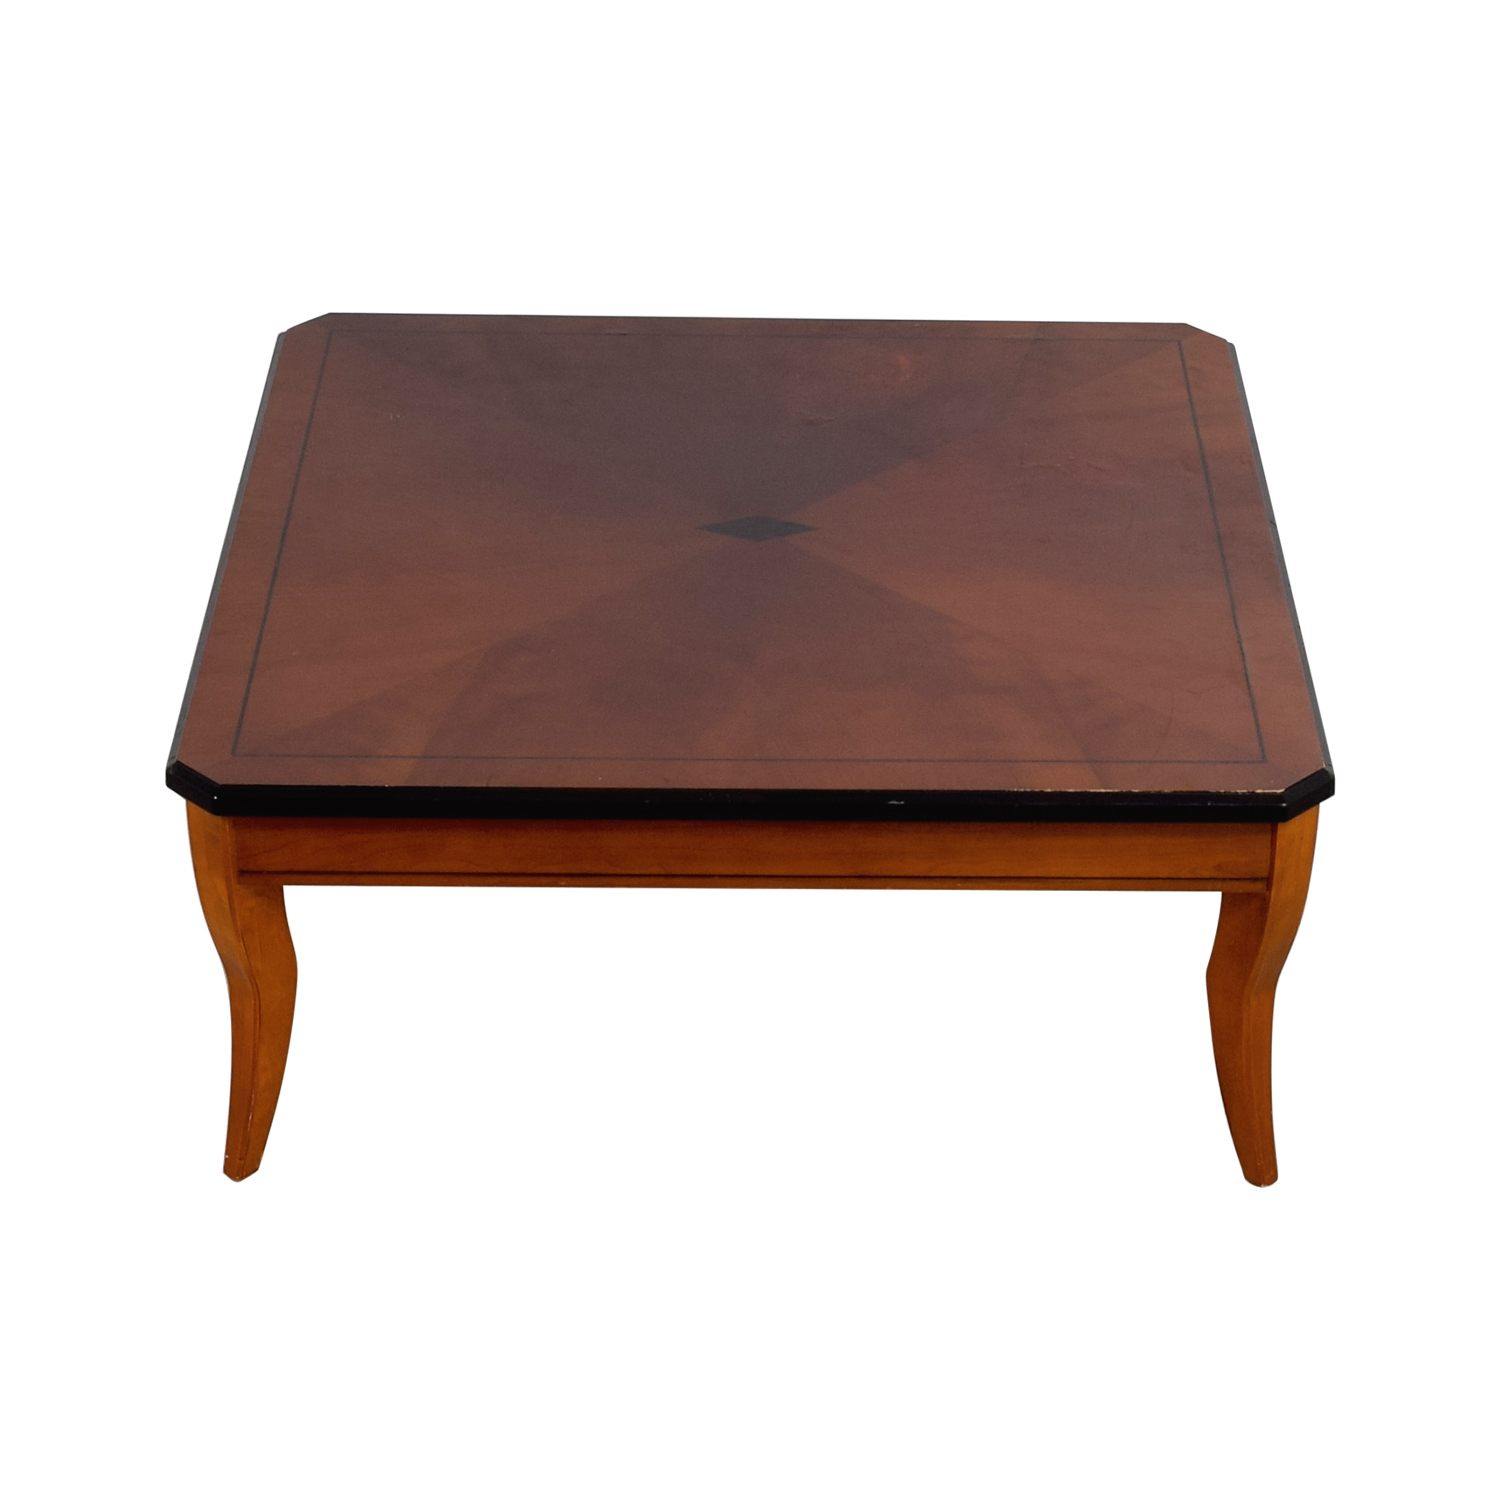 Cherry Wood Square Coffee Table